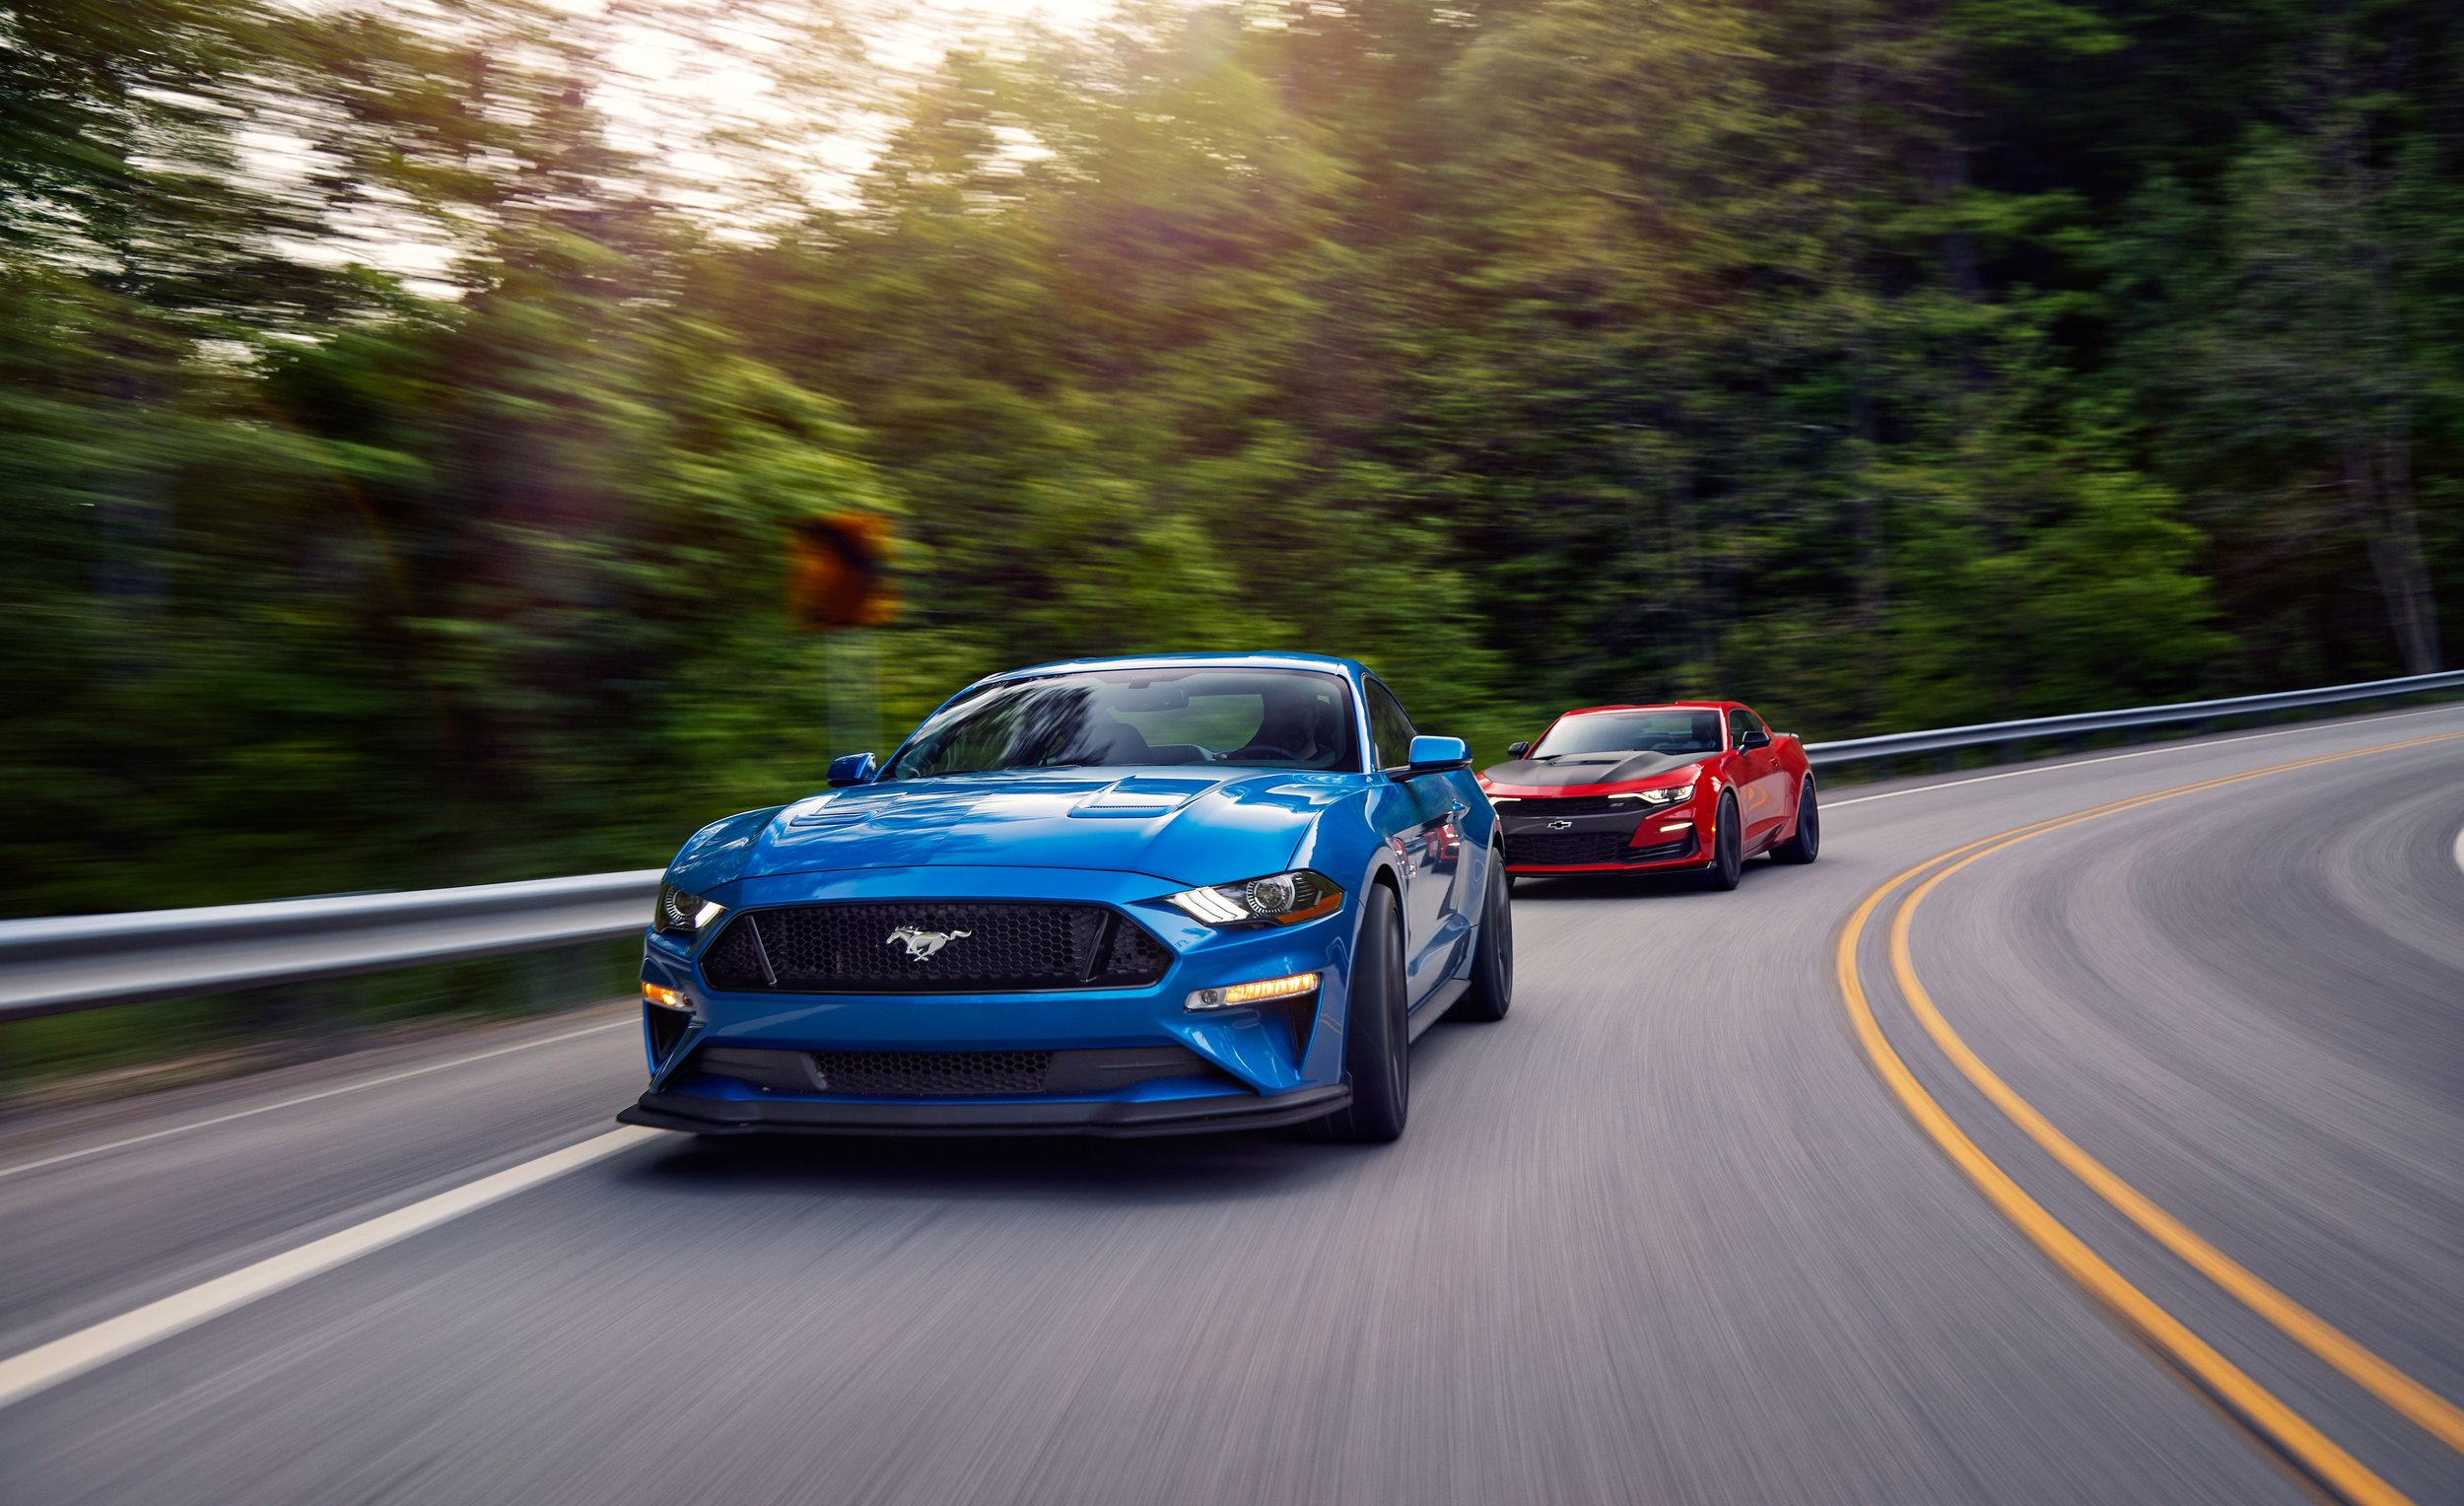 2019-ford-mustang gt-ppl2-vs-chevrolet-camaro-ss-1le-greg-pajo-car-and-driver.jpg